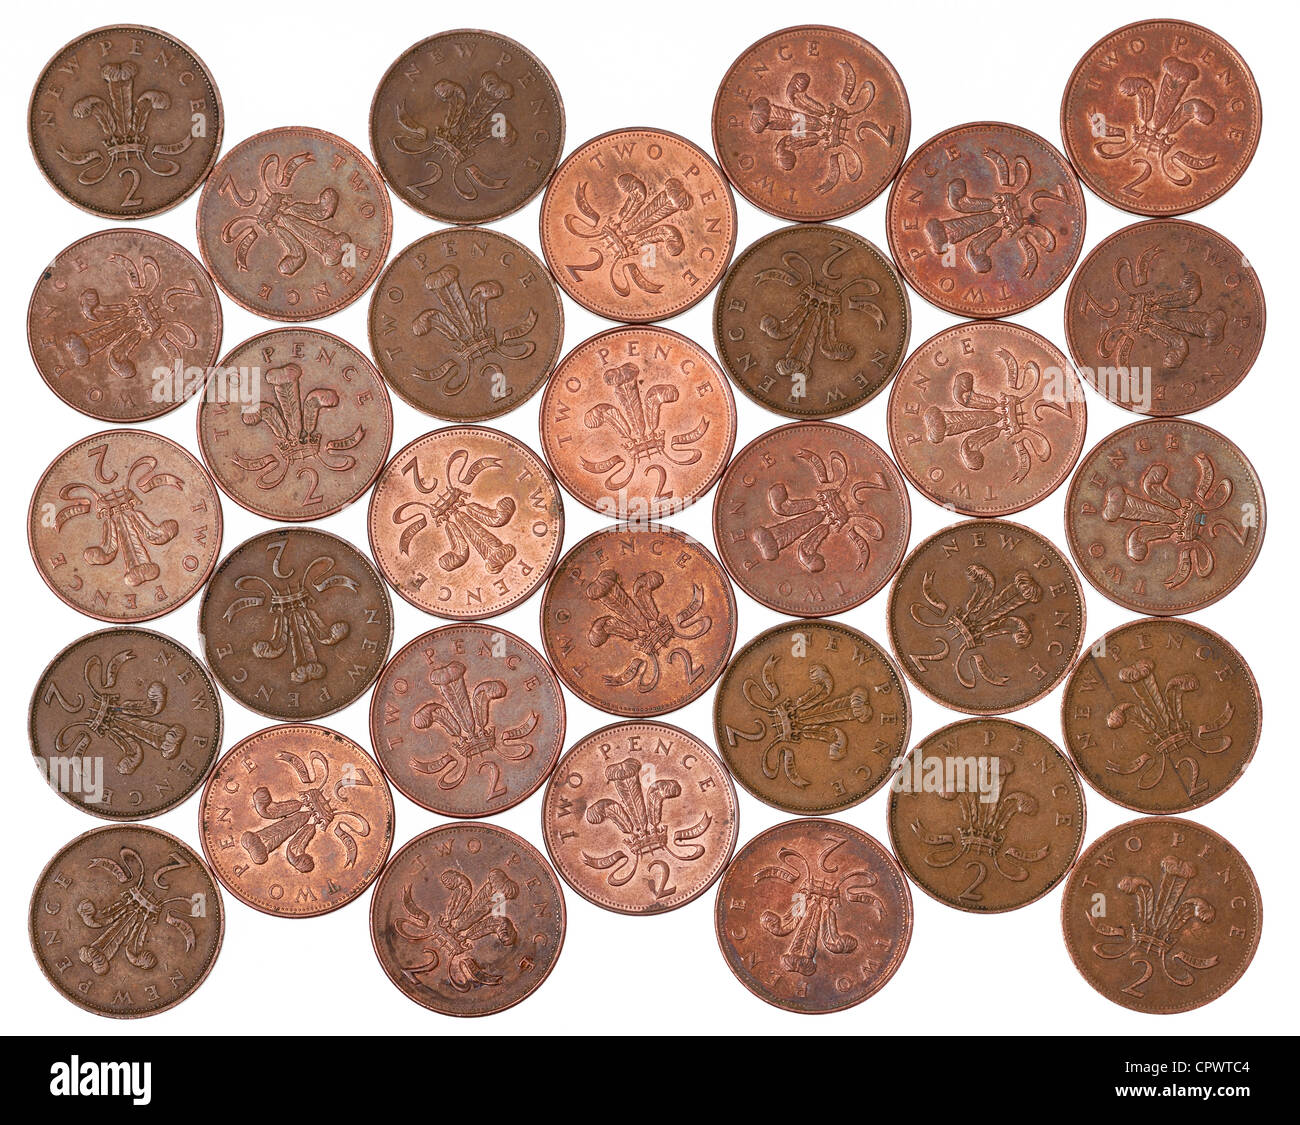 UK 2p coins - Stock Image